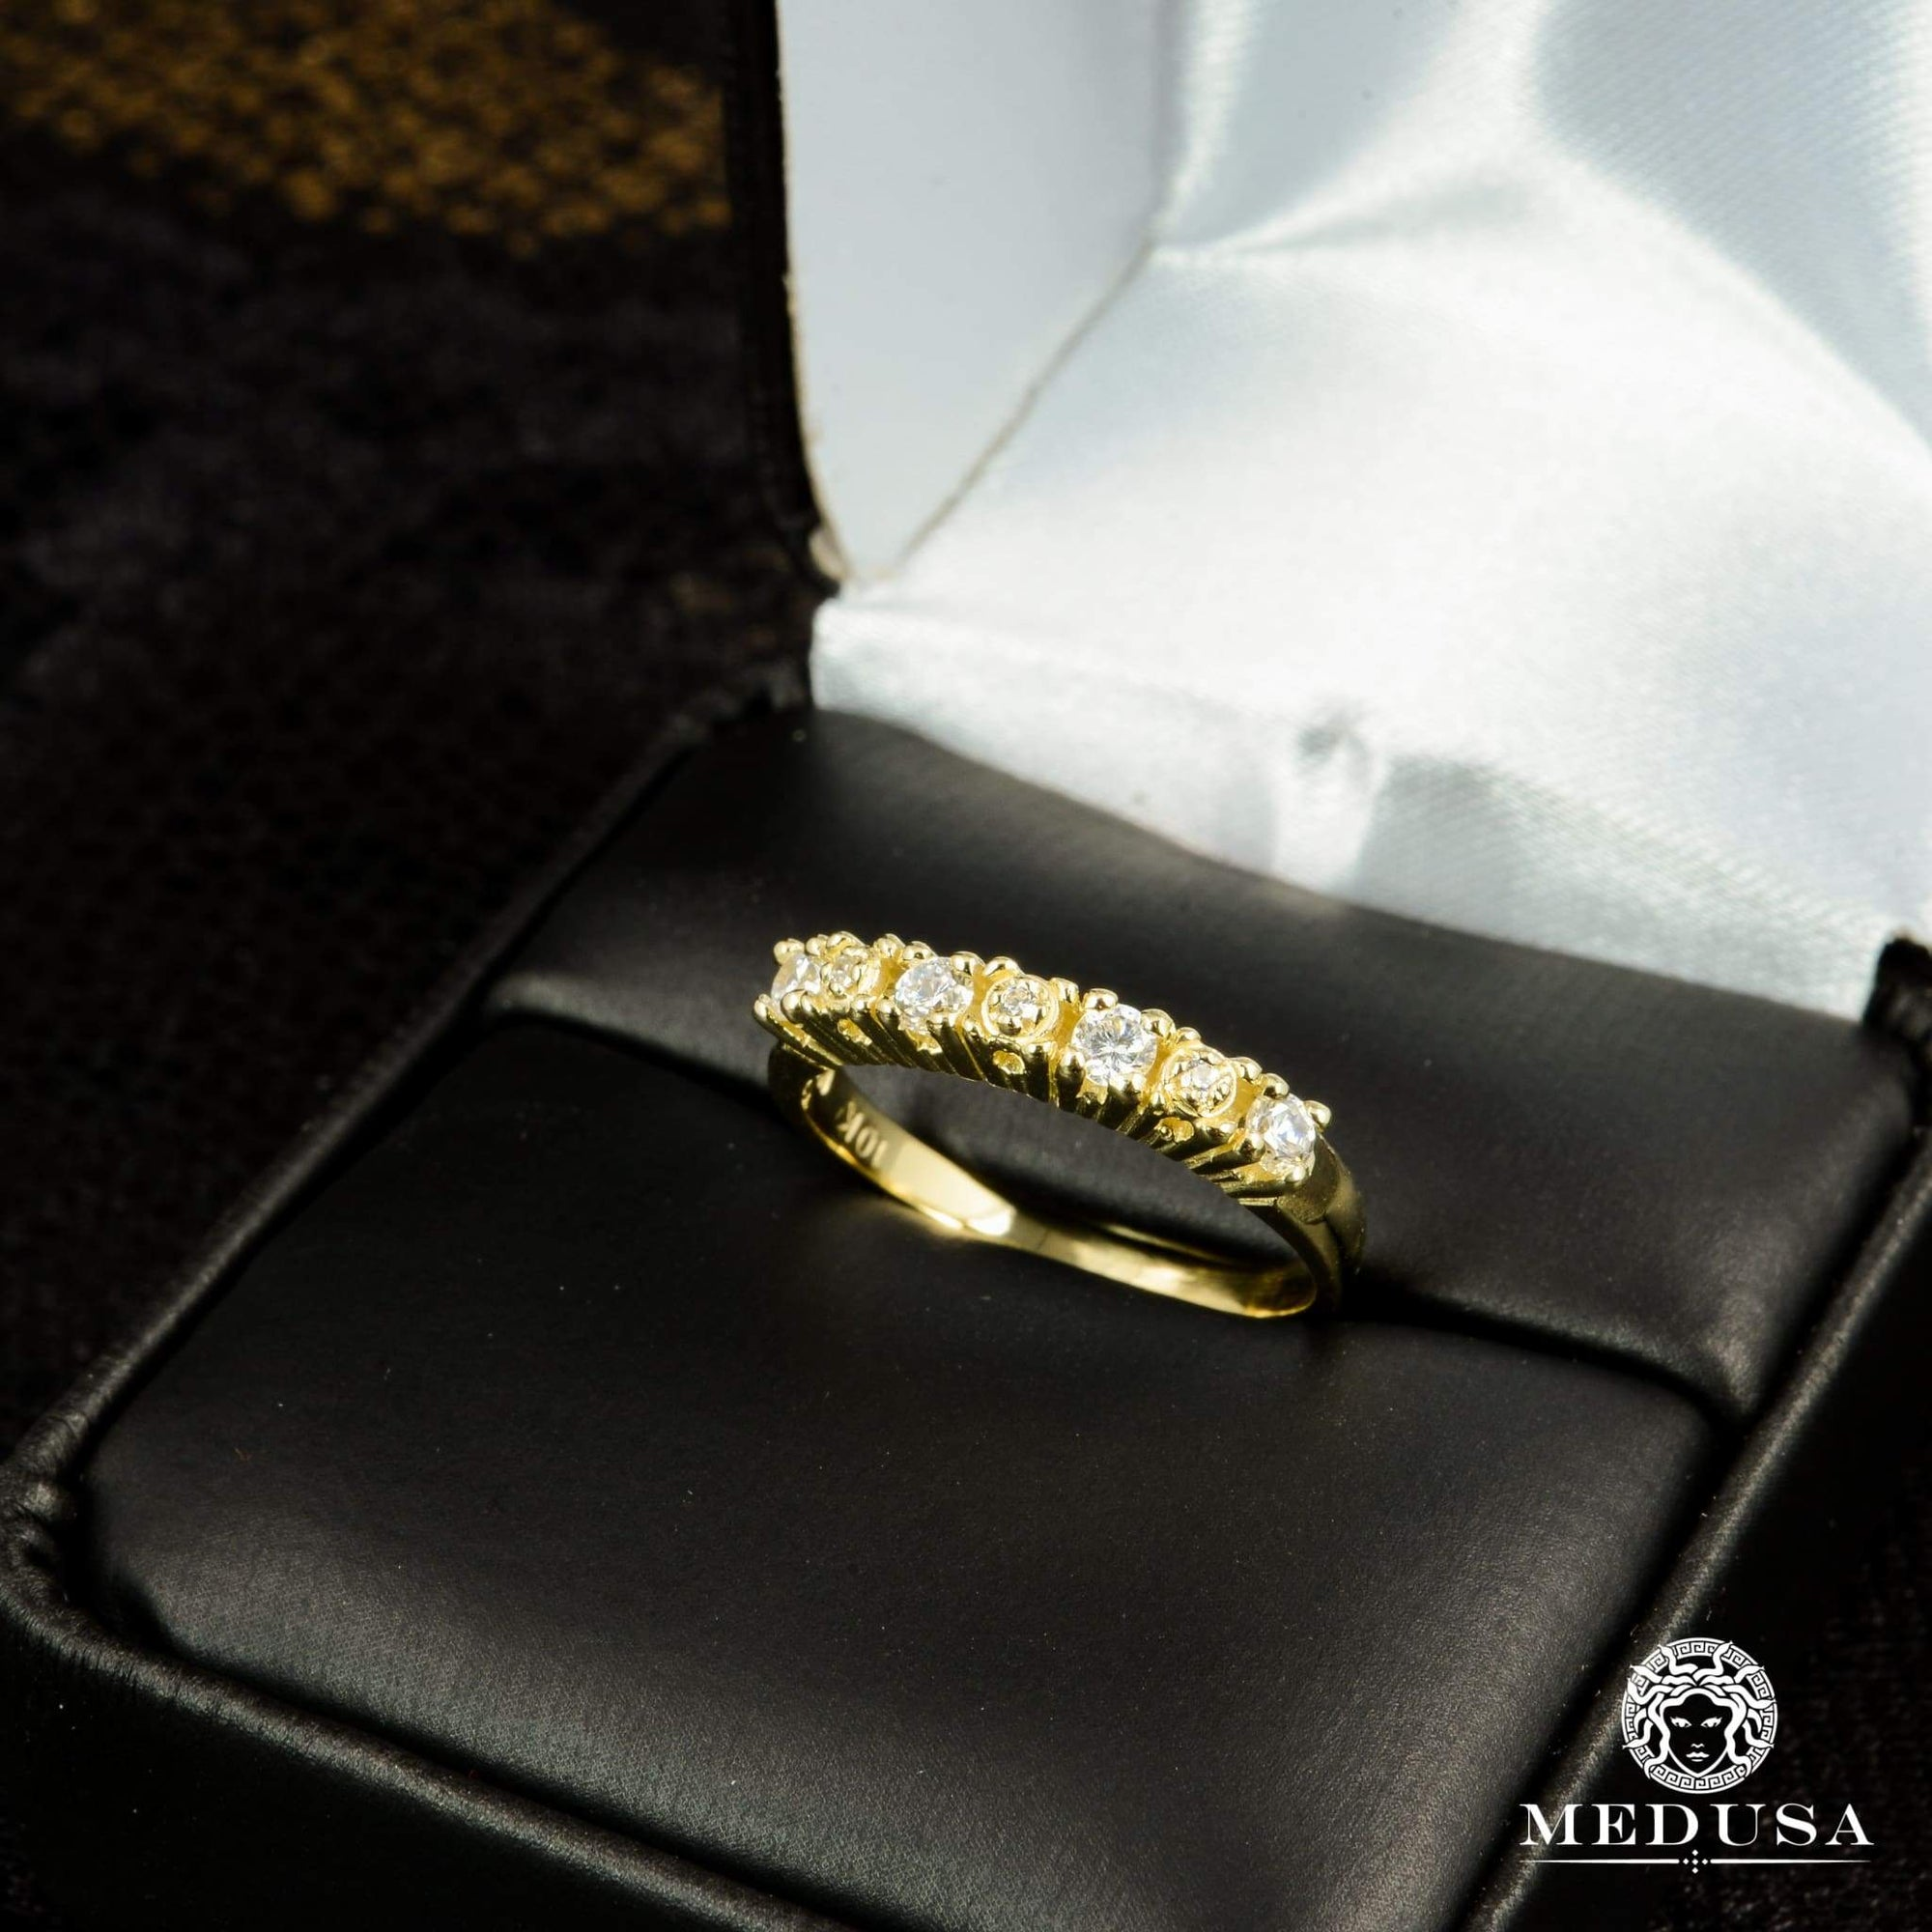 Bague à Diamants en Or 14K | Bague Fiançaille Eternity F17 - MA0245 Or Jaune